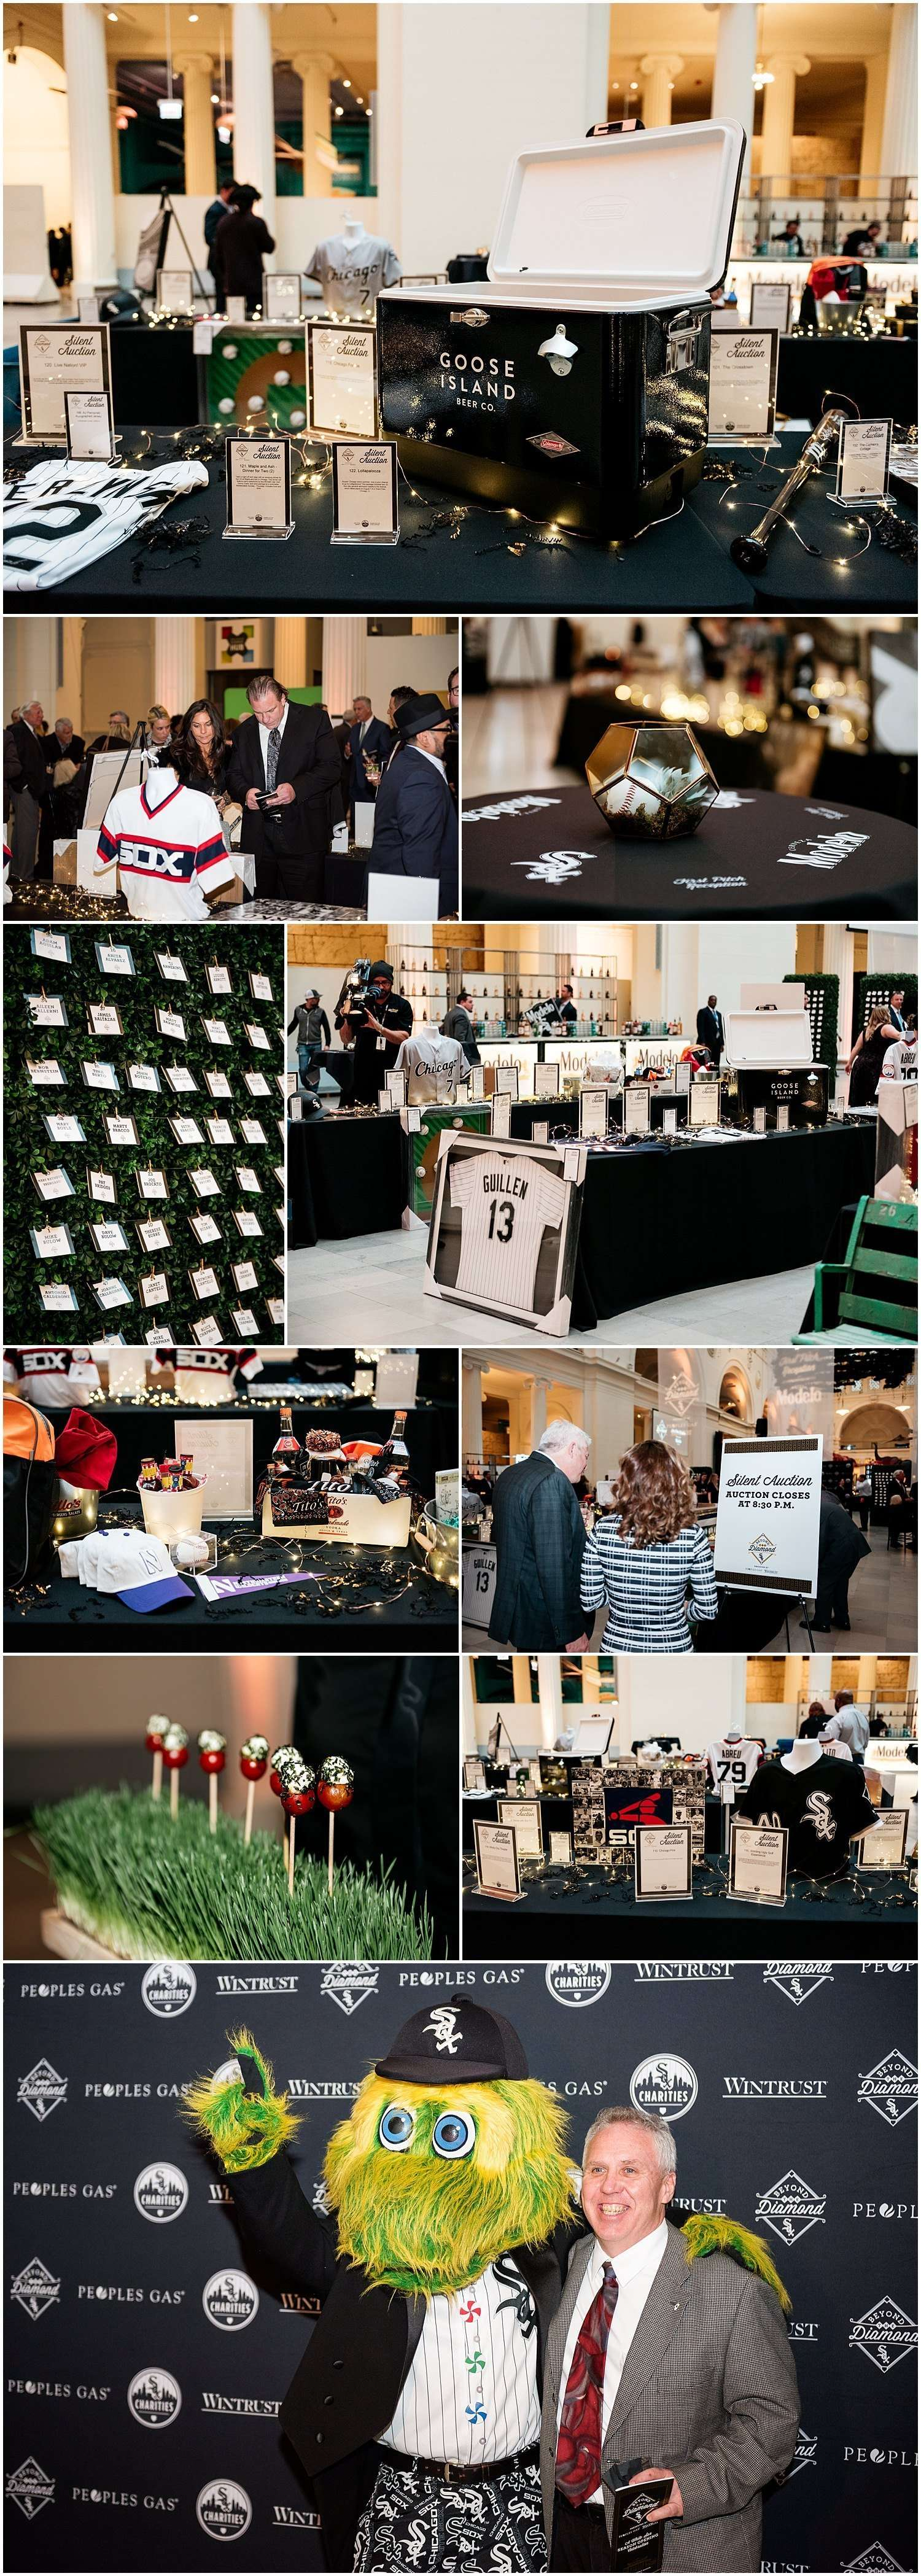 white sox, baseball, mlb, charity, event, photographer, photography, field museum, charities, beyond the diamond, chicago